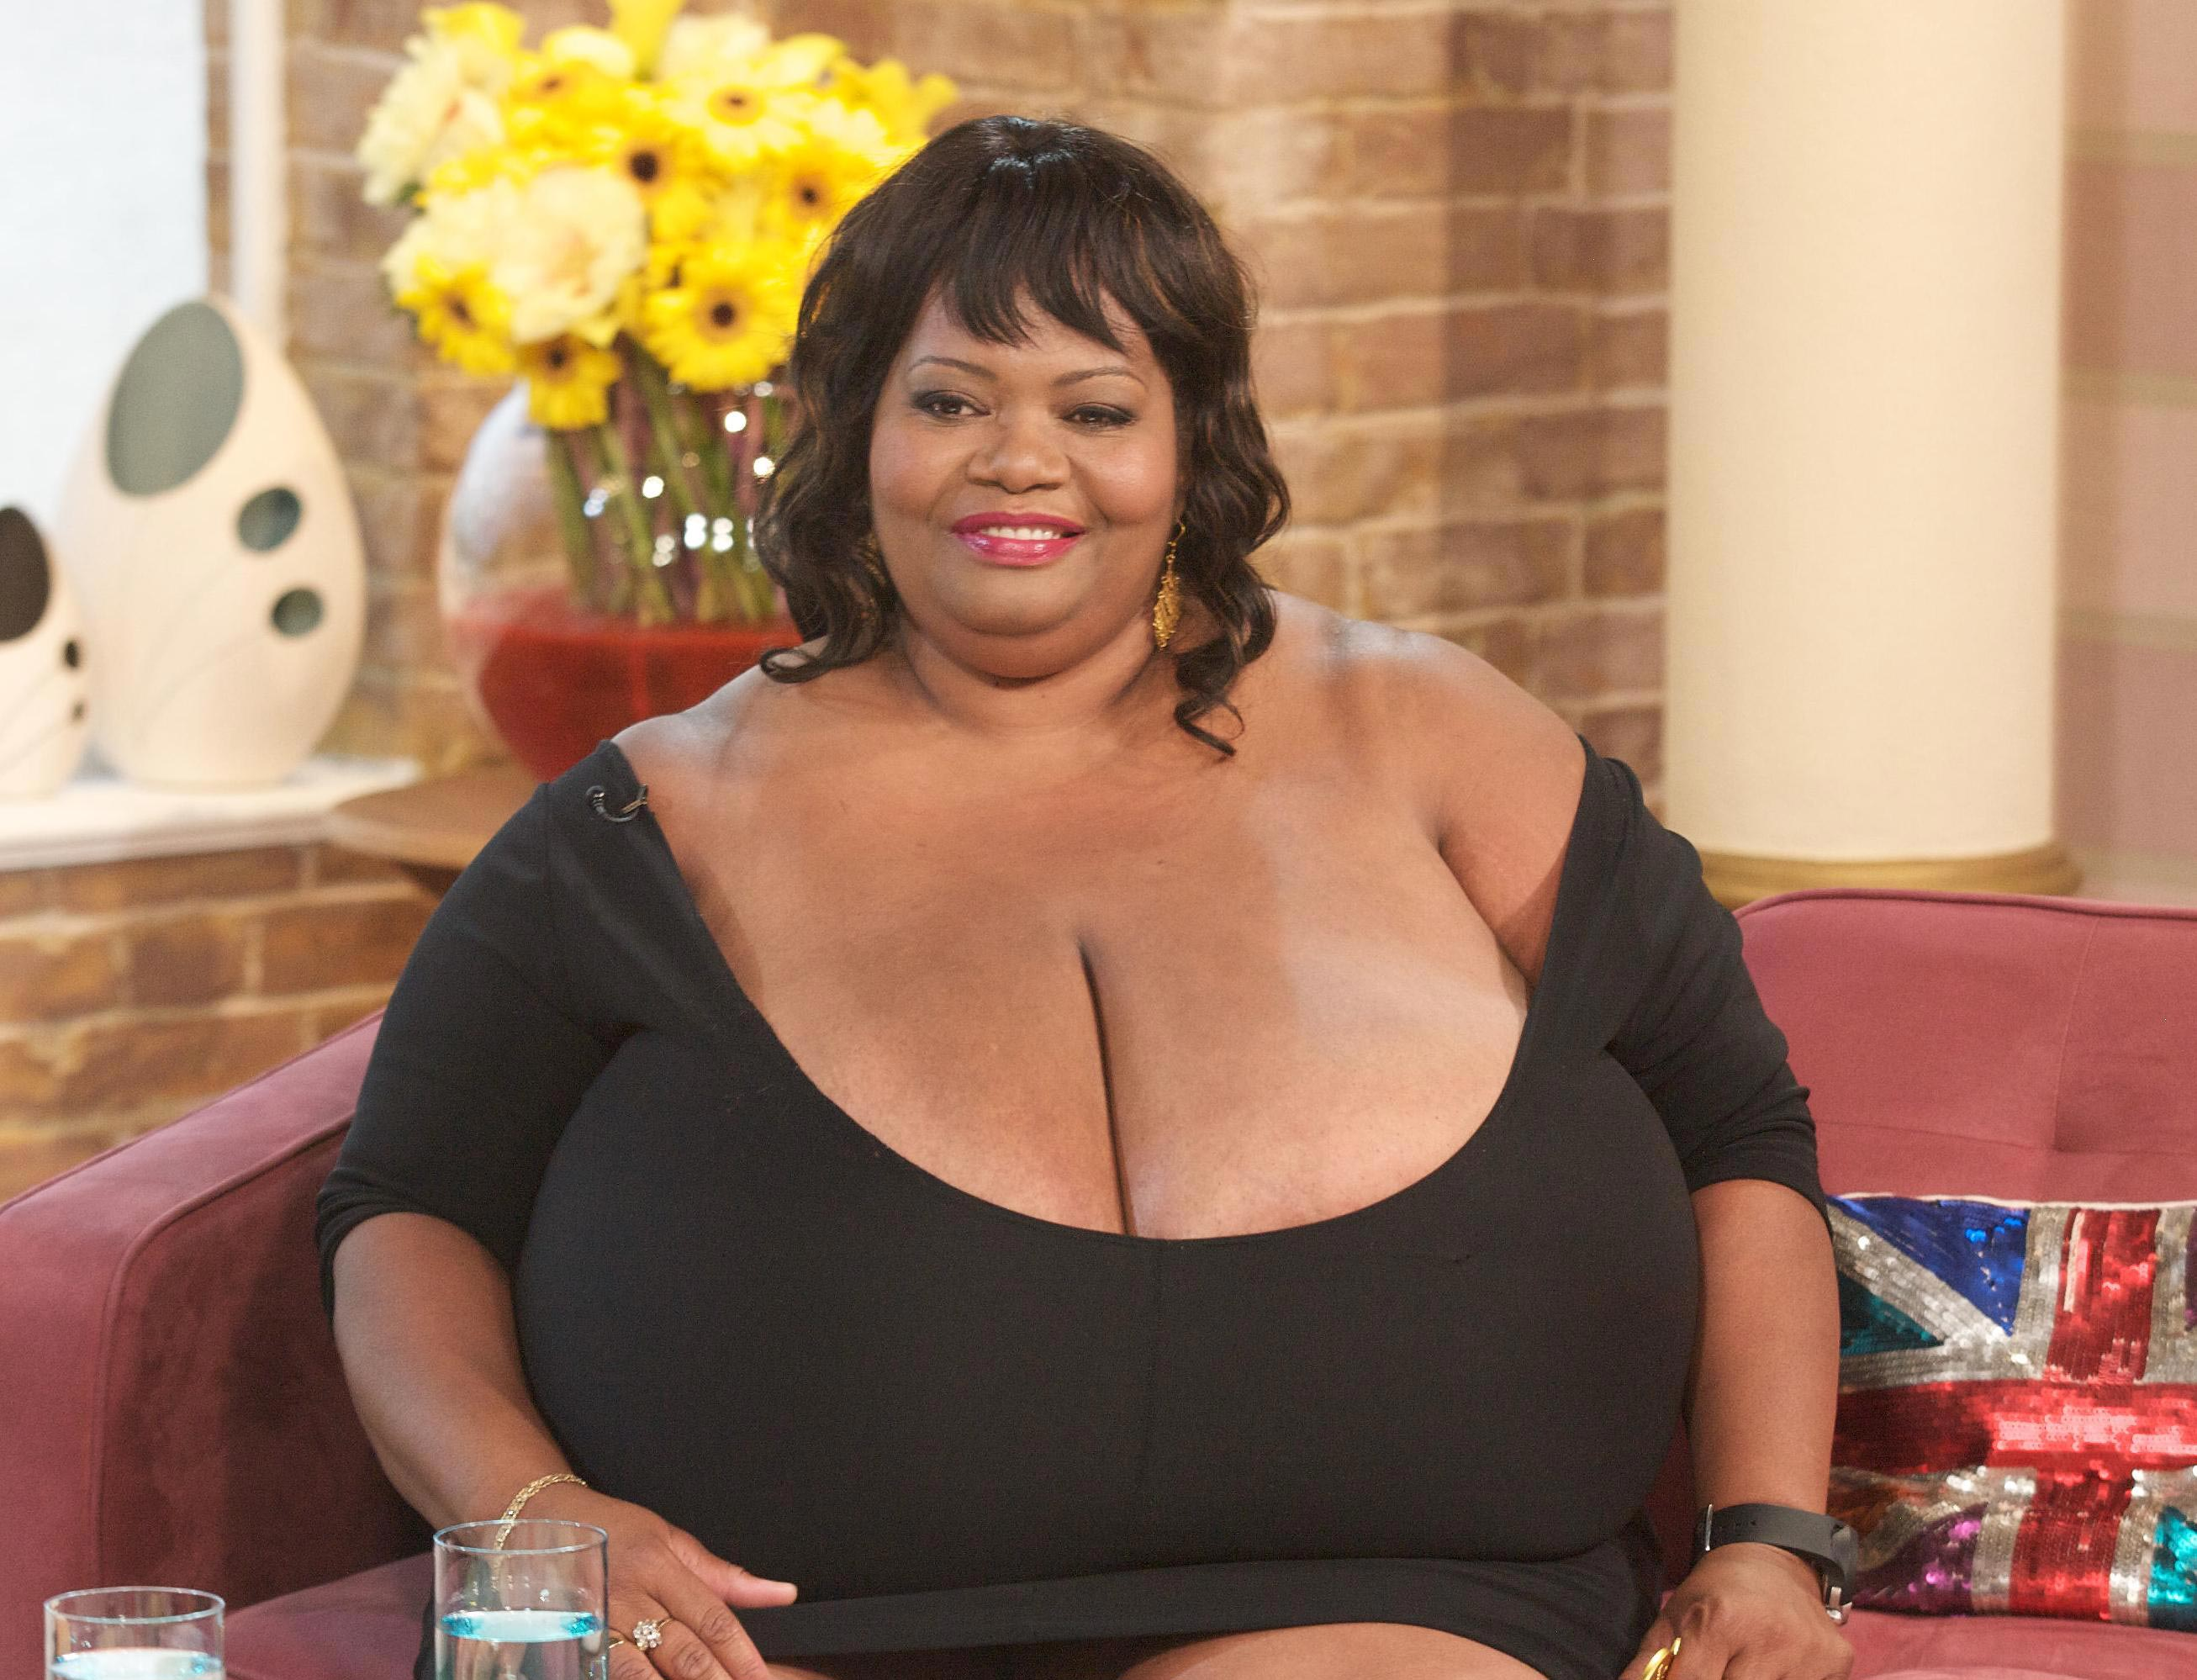 Women with large boobs accept